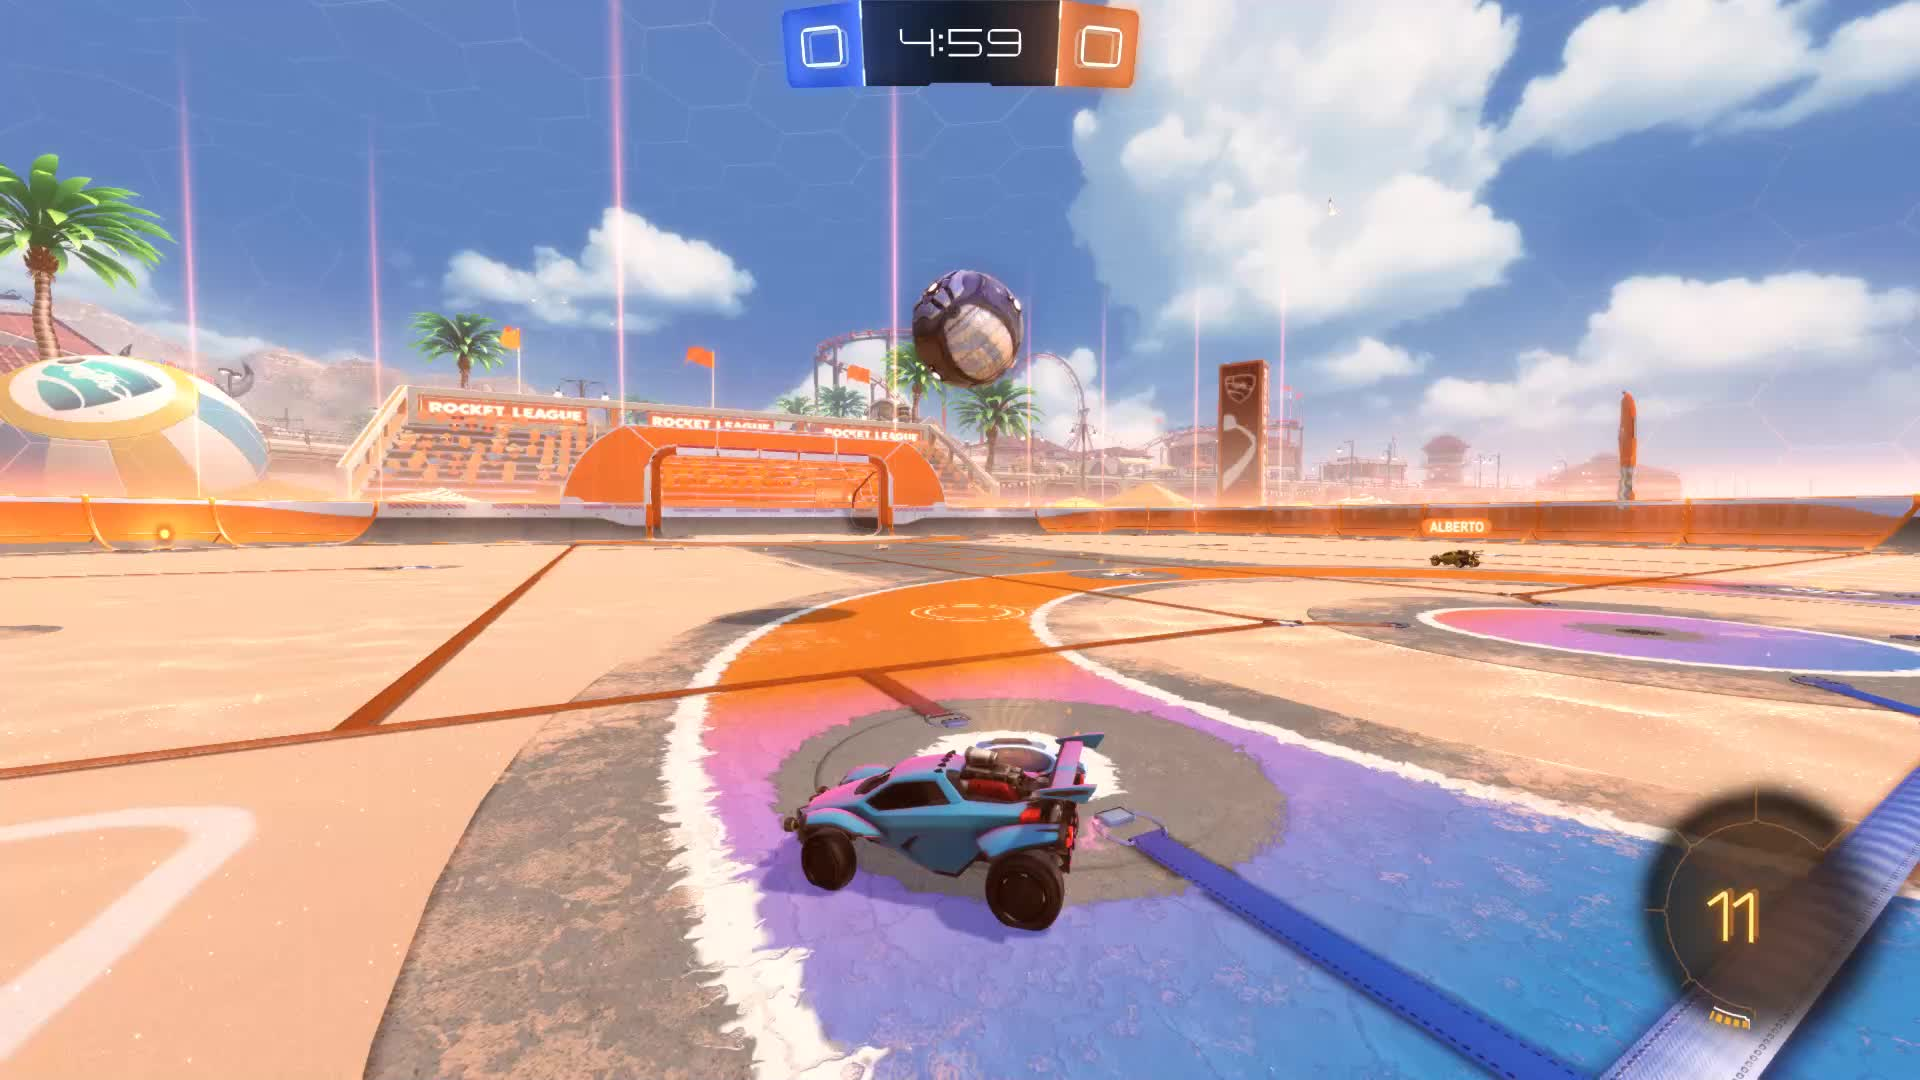 Chippahh, Gif Your Game, GifYourGame, Rocket League, RocketLeague, gtaonline, gtav, Goal 1: Chippahh GIFs